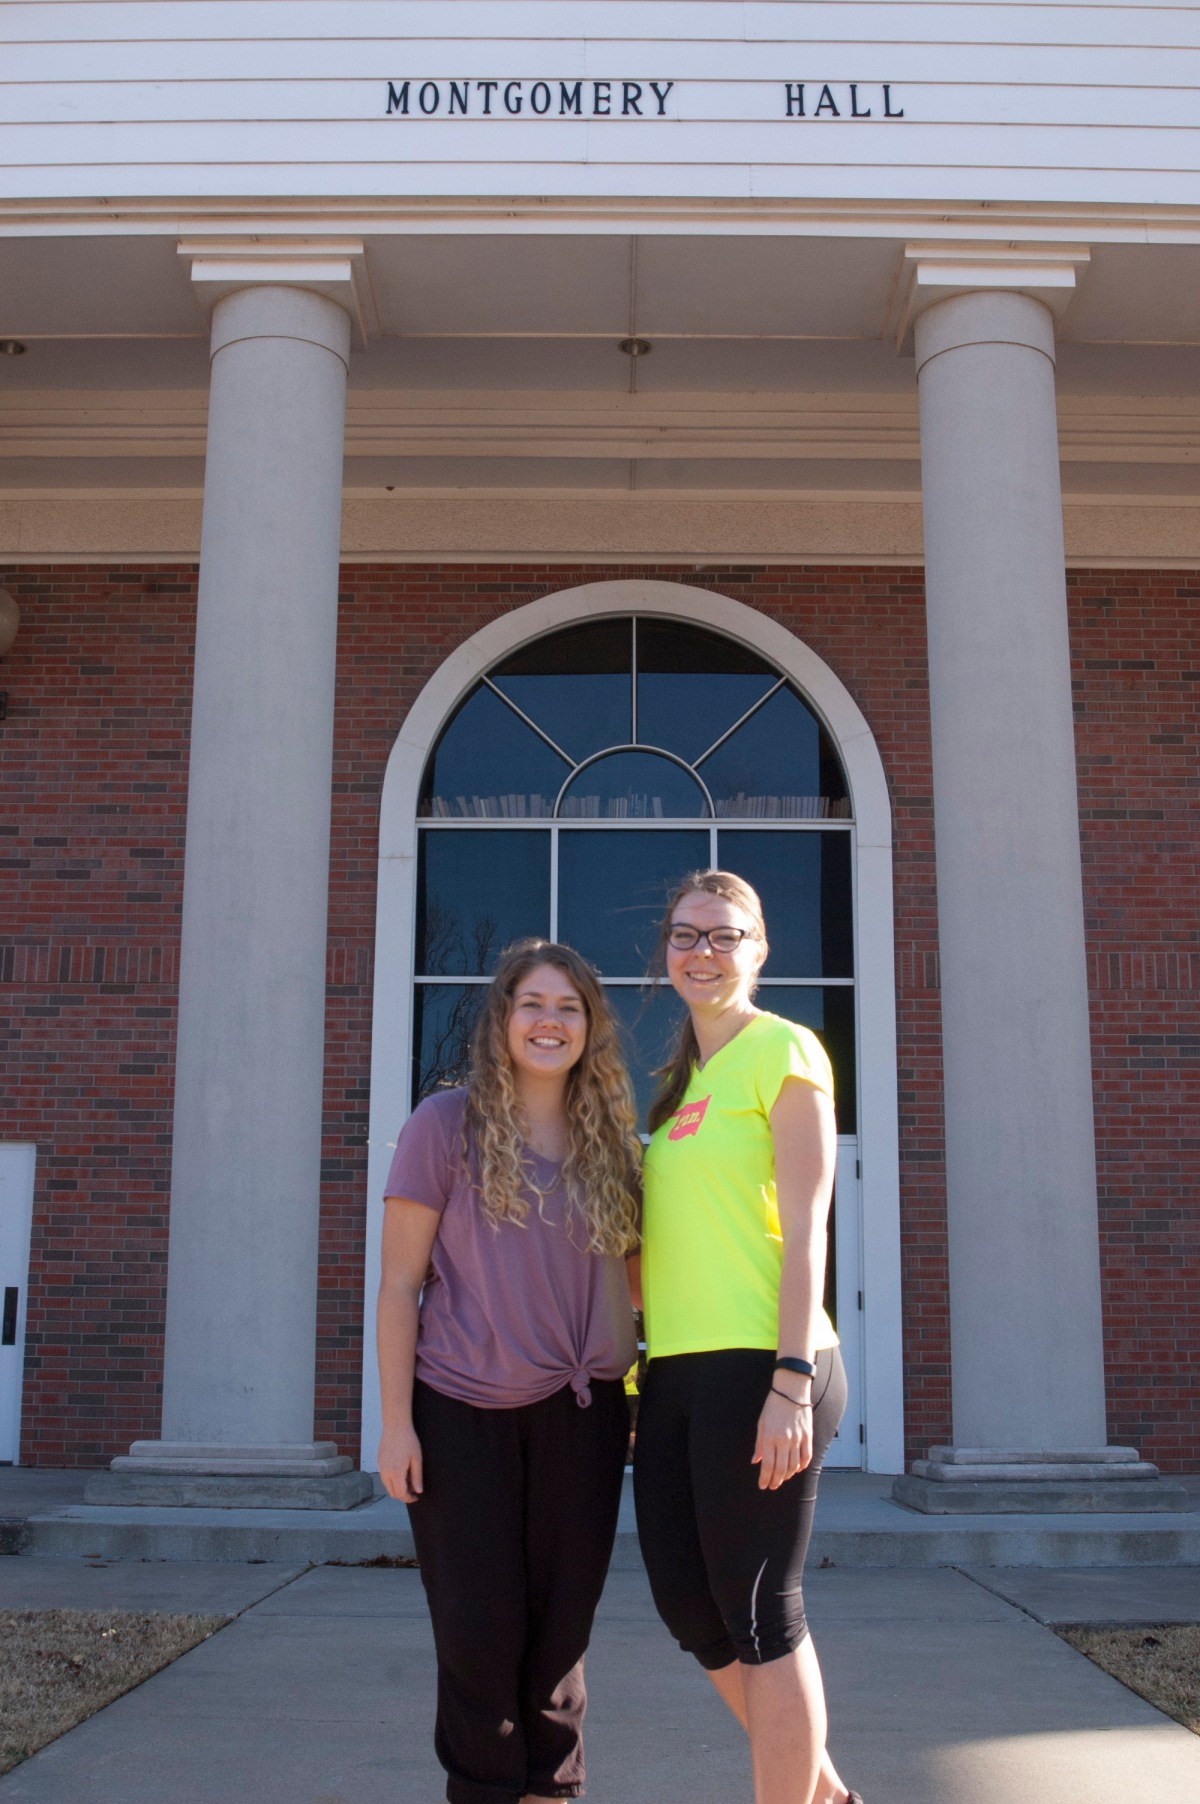 The women of Hobb's College share theirexperiences